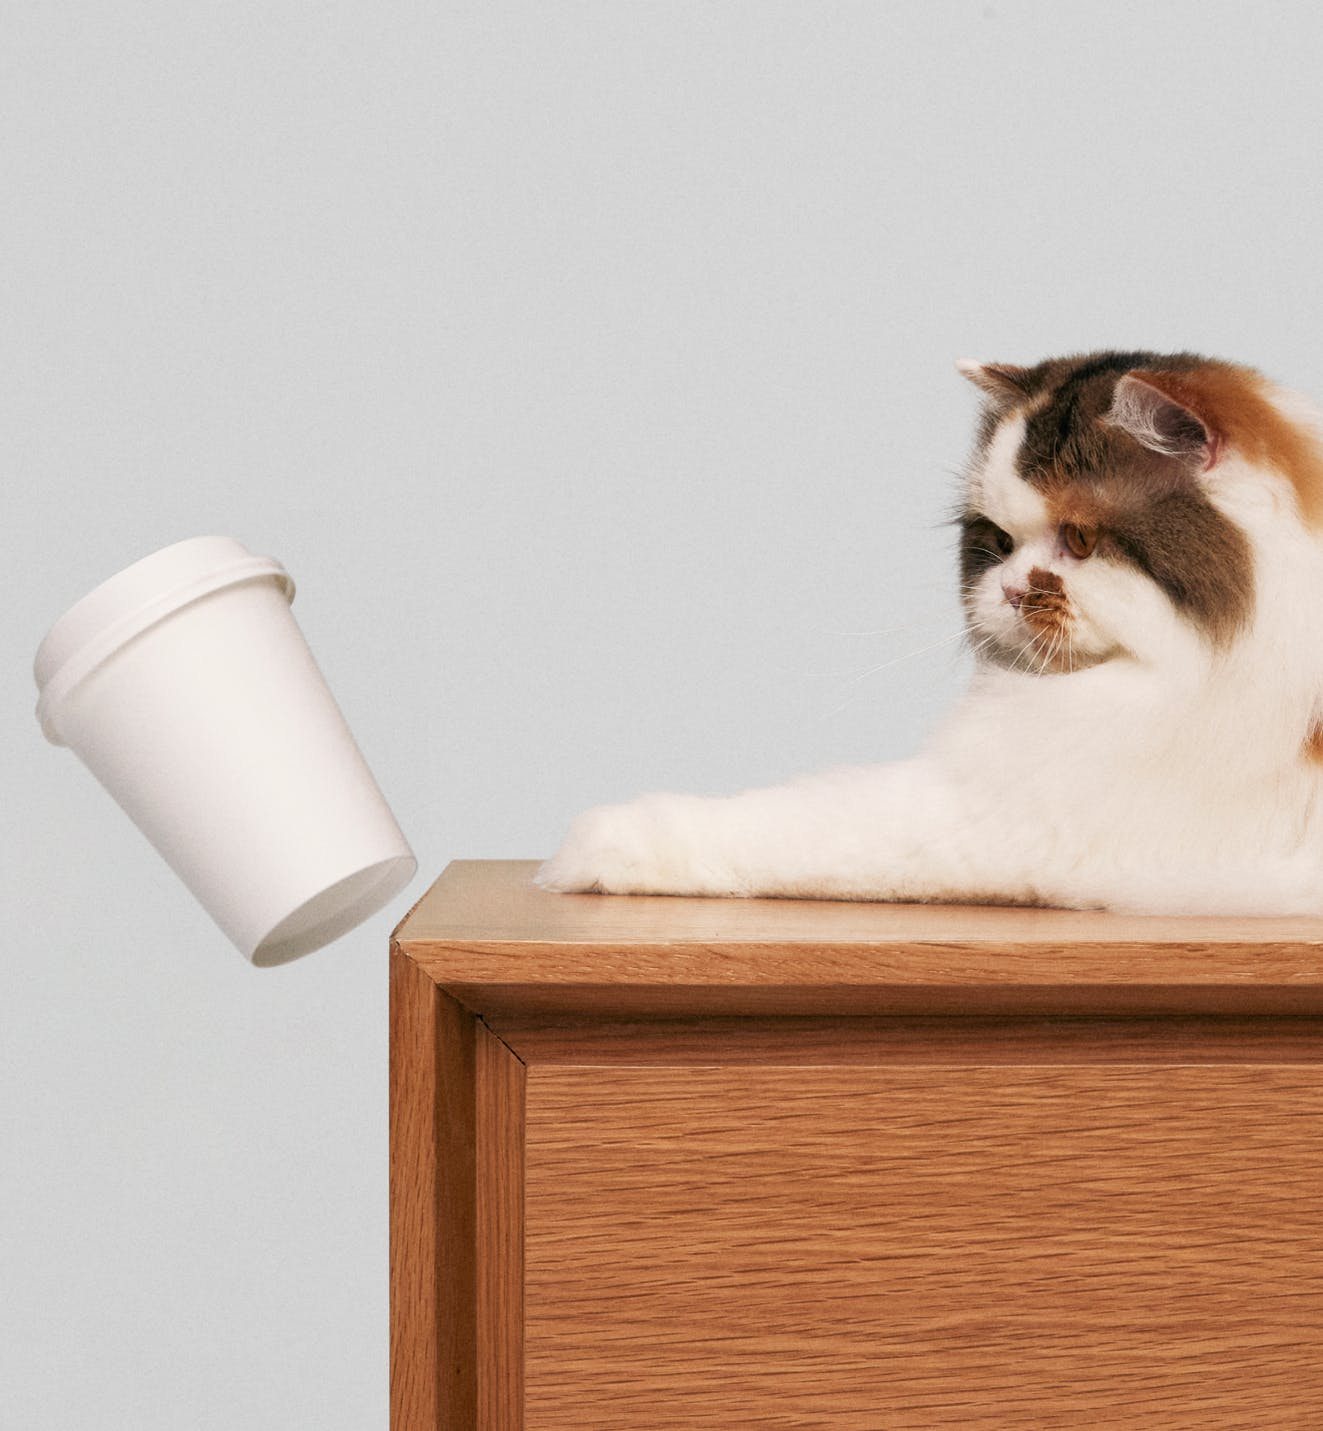 Cat pushing over a cup